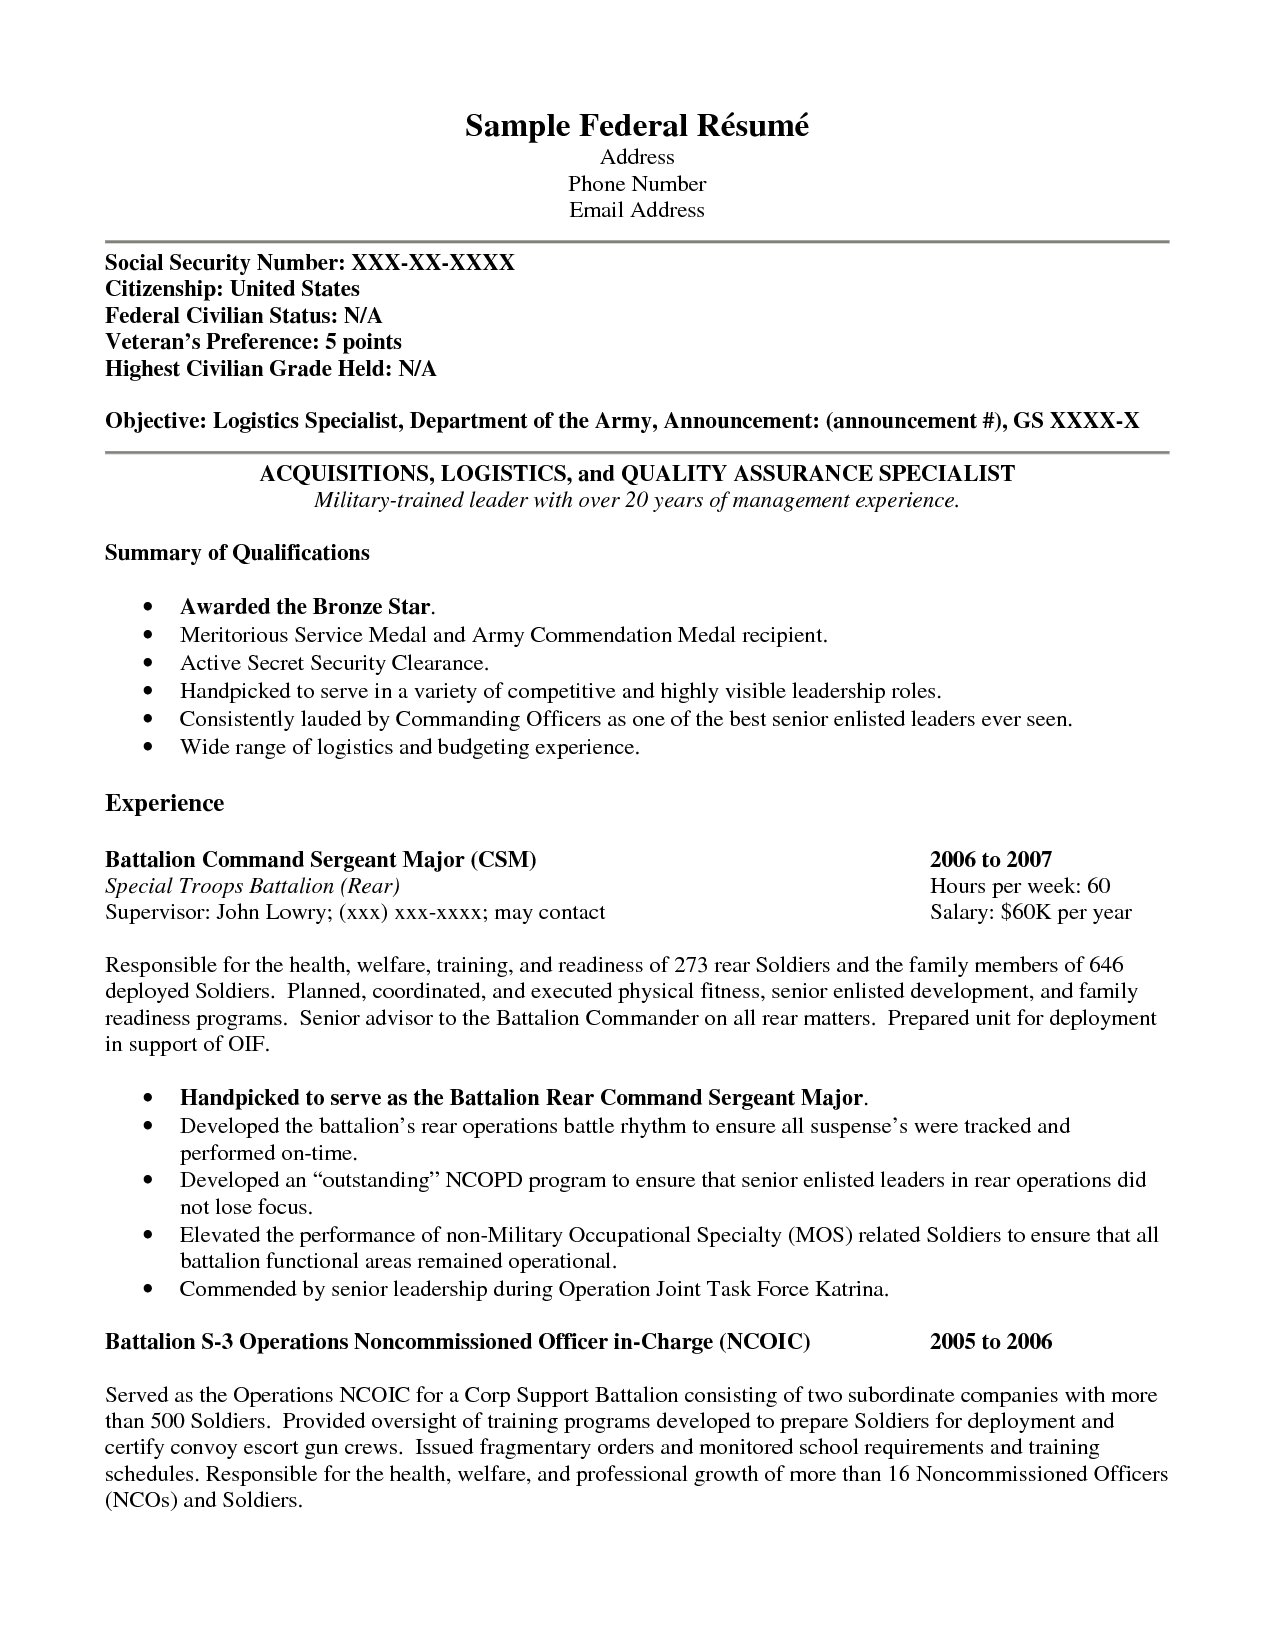 free military resume builder templates and service for veterans veteran template how write logistics specialist army - Veterans Resume Builder